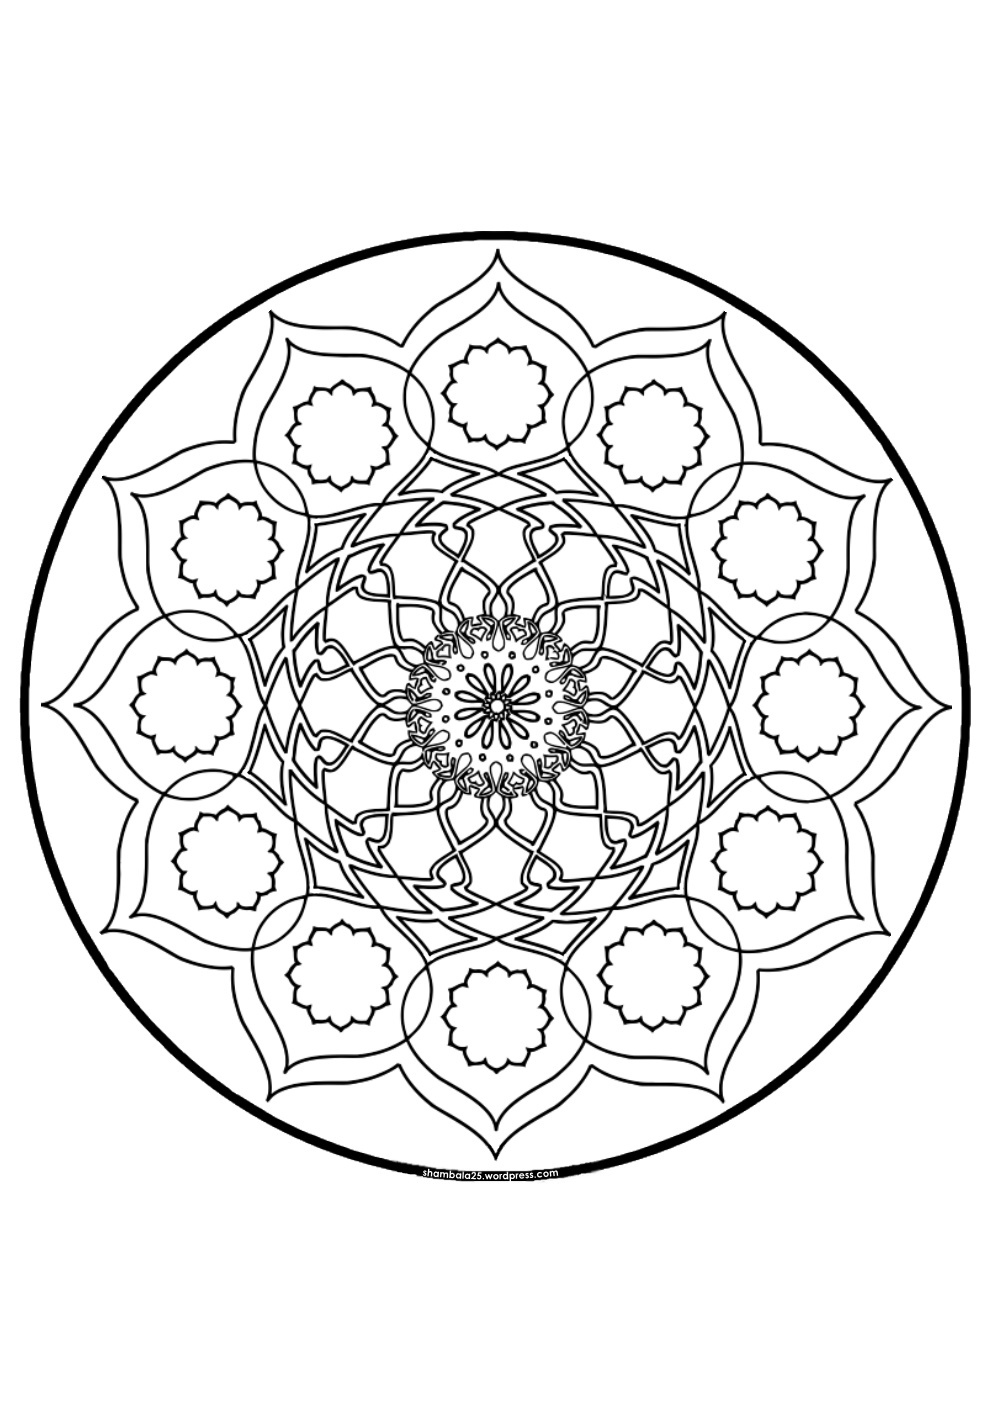 66 dessins de coloriage mandalas difficile imprimer sur. Black Bedroom Furniture Sets. Home Design Ideas